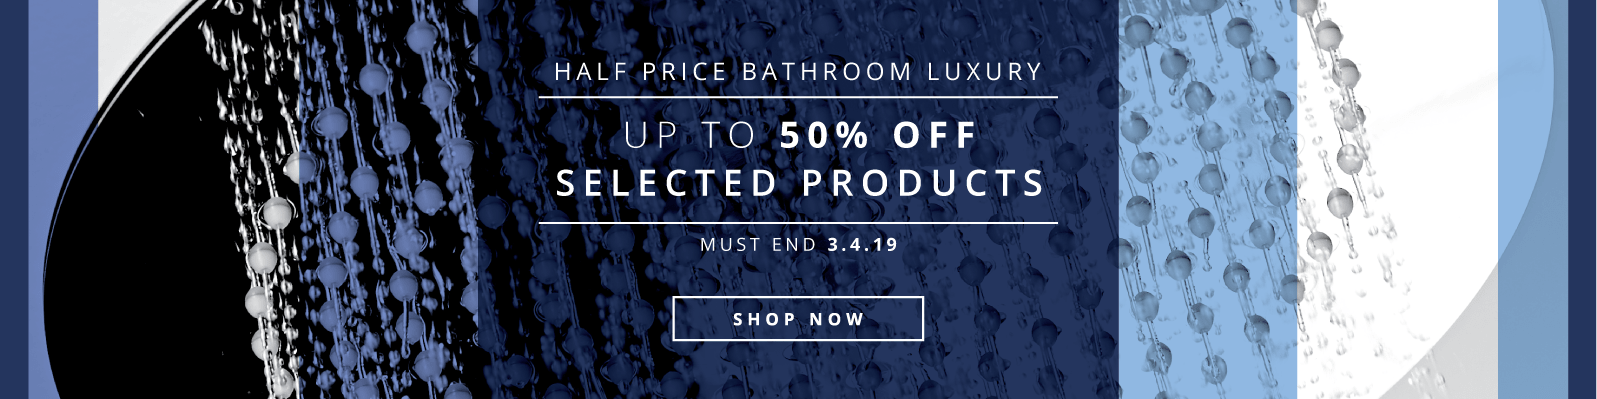 Half Price Bathroom Luxury Up to 50% off selected products Must End 3.4.19 Shop Now